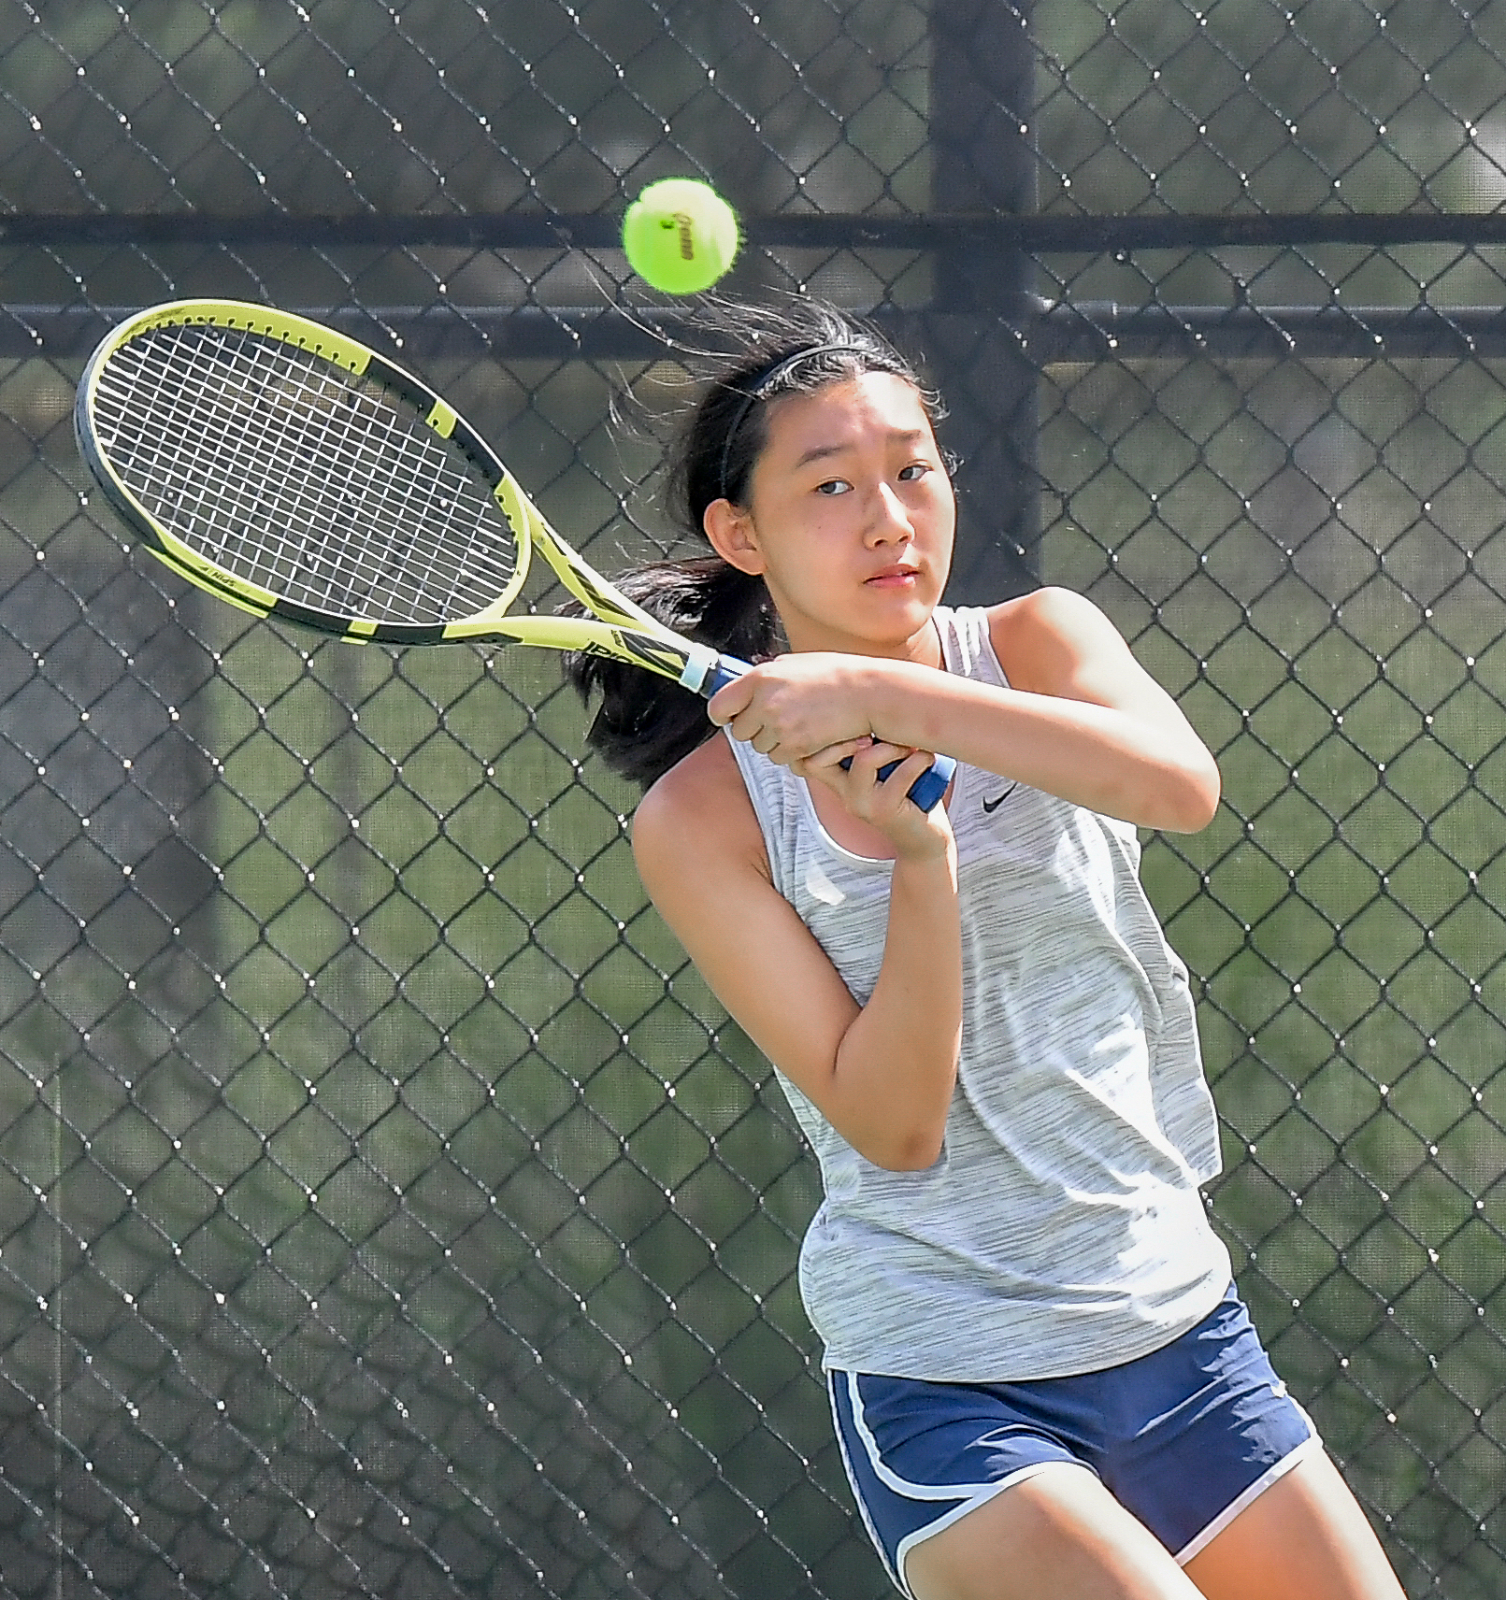 Images From Hudson Girls Tennis